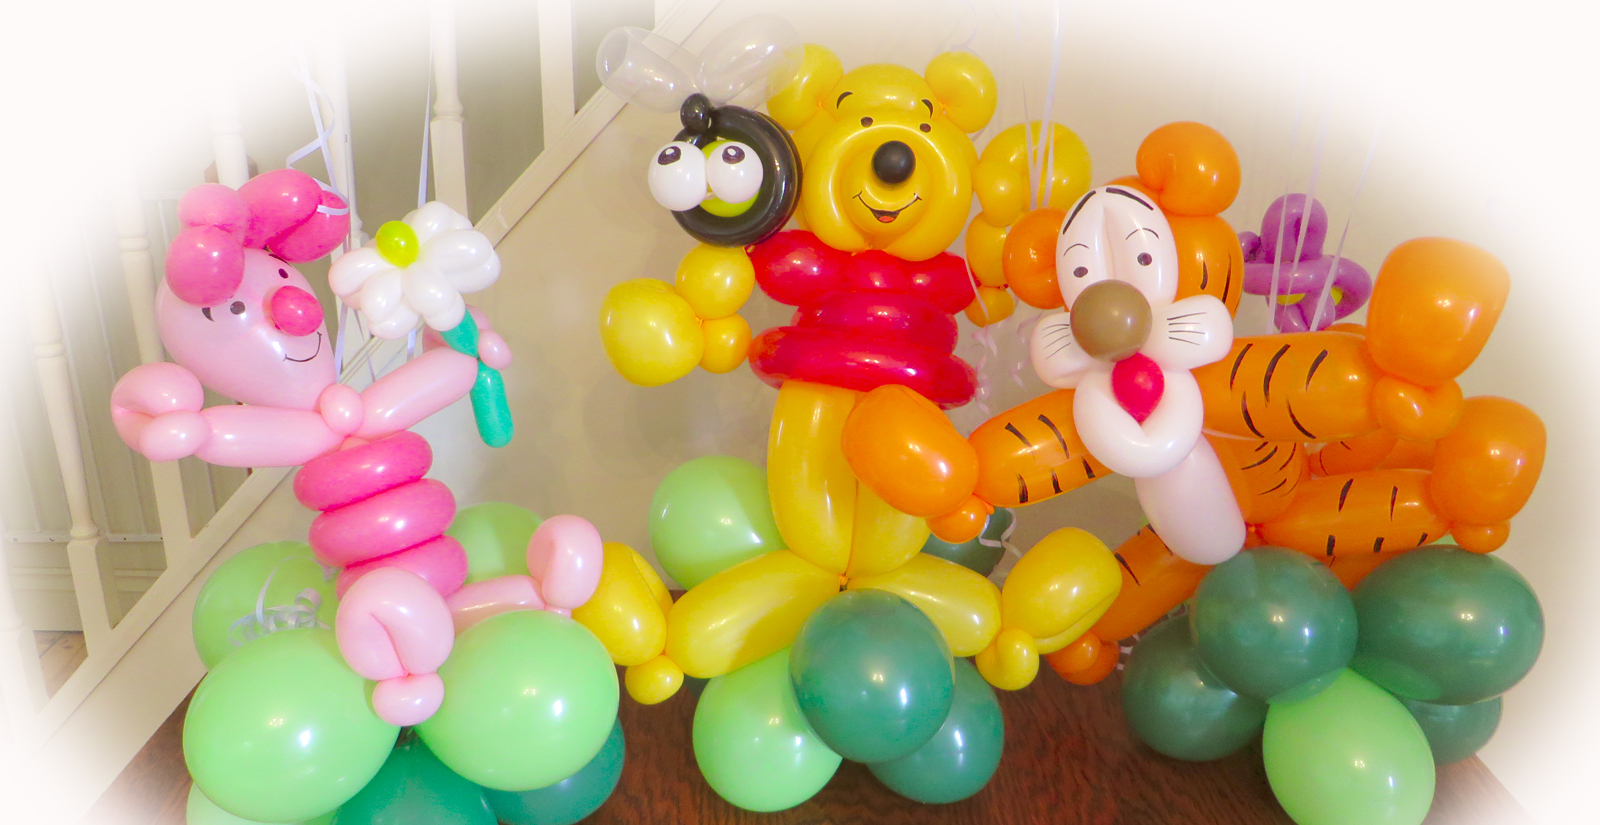 Cute balloony creations